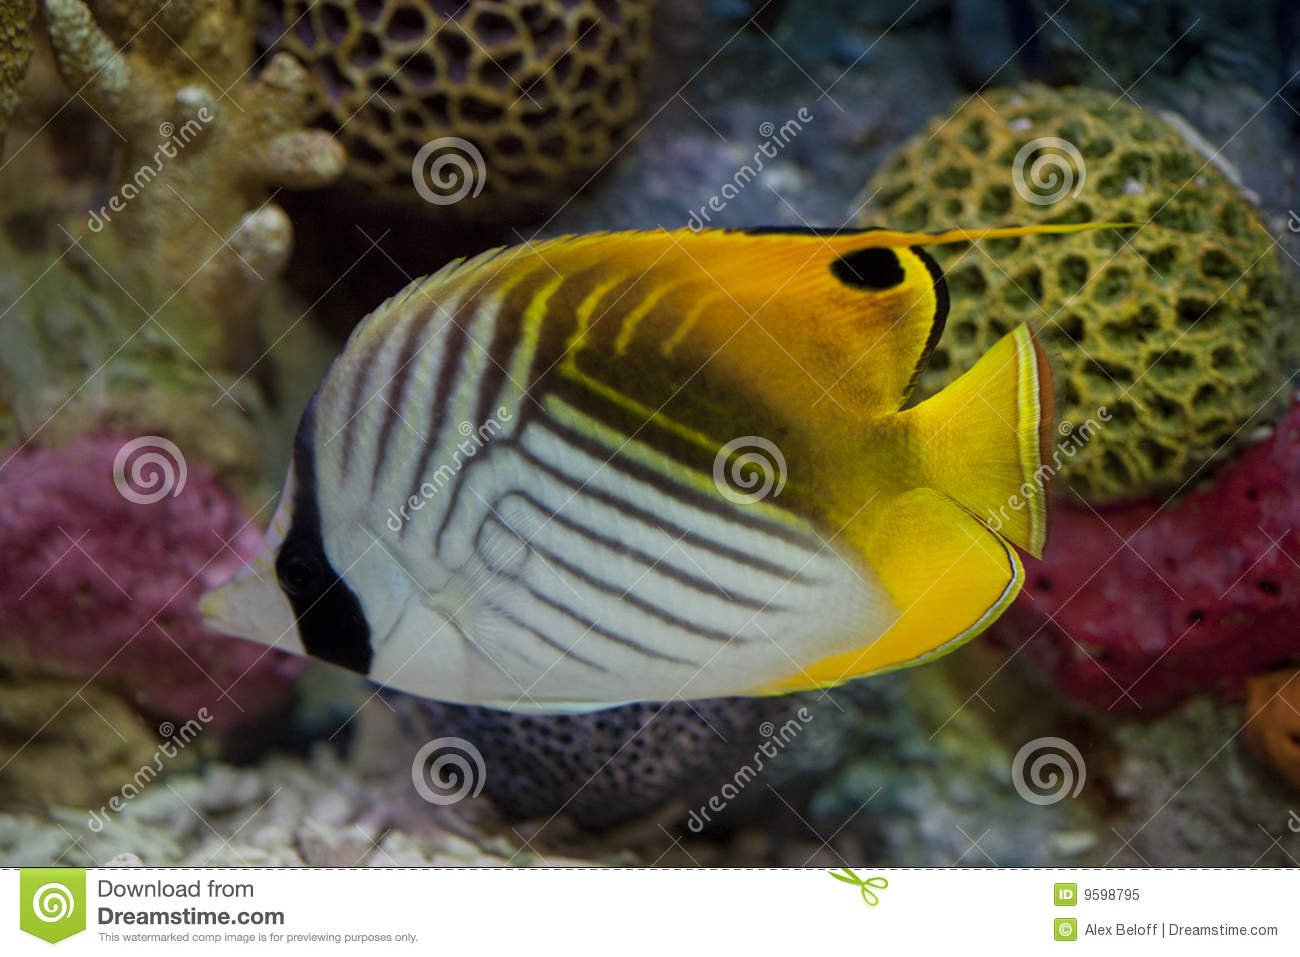 Exotic Fish In Tank Royalty Free Stock Photo Image 9598795